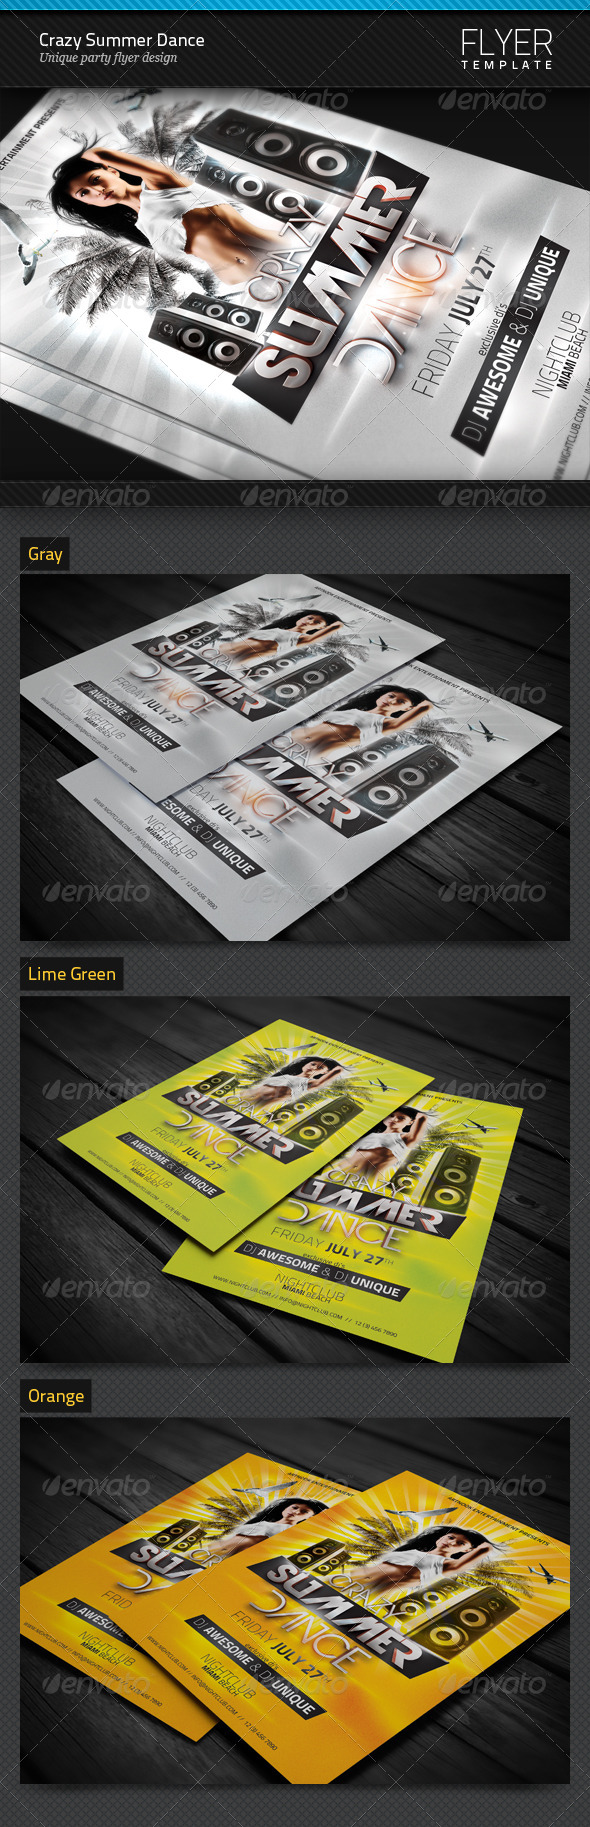 GraphicRiver Crazy Summer Dance Party Flyer Template 4748441